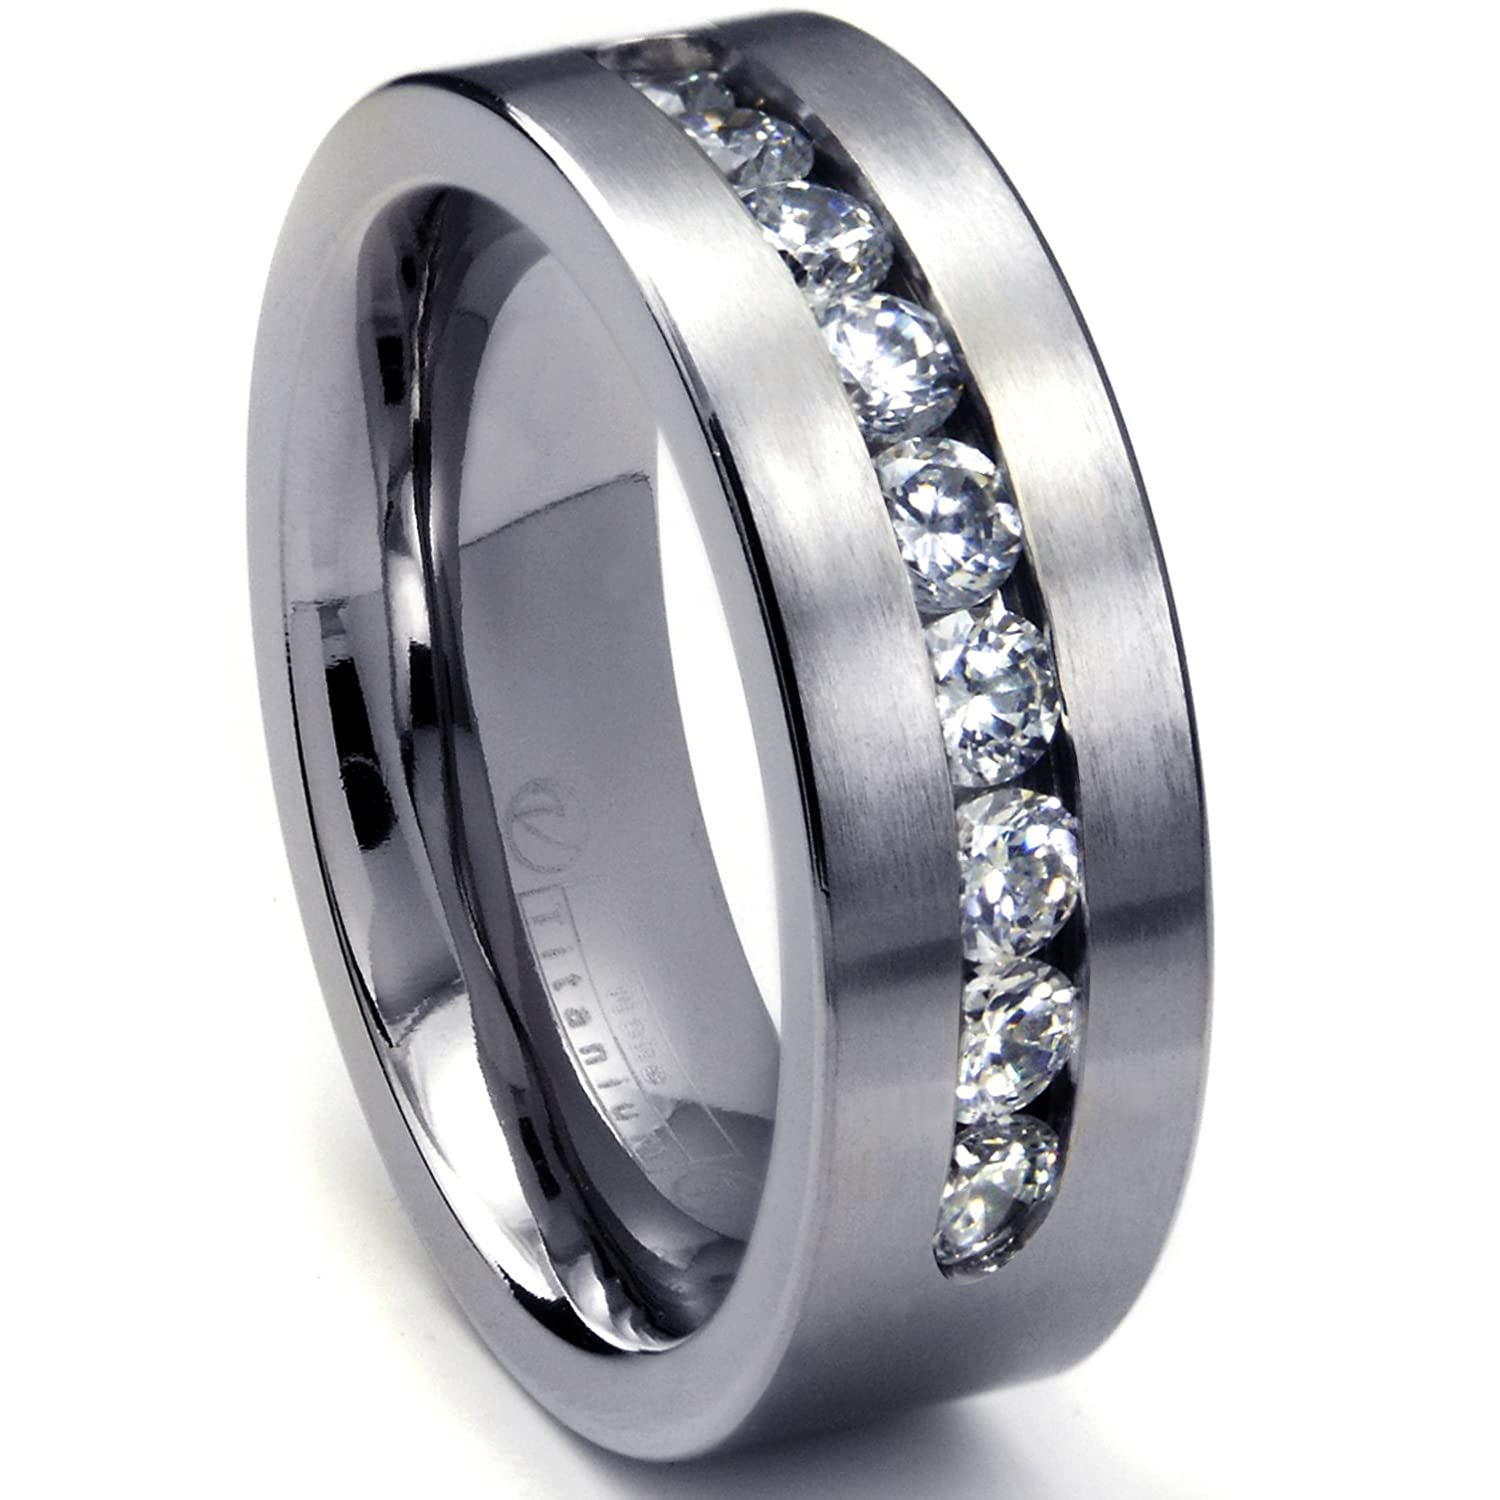 love wedding band s mens meteorite with men platinum image in a diamonds celebrate pasted ring bands eternity diamond eternal